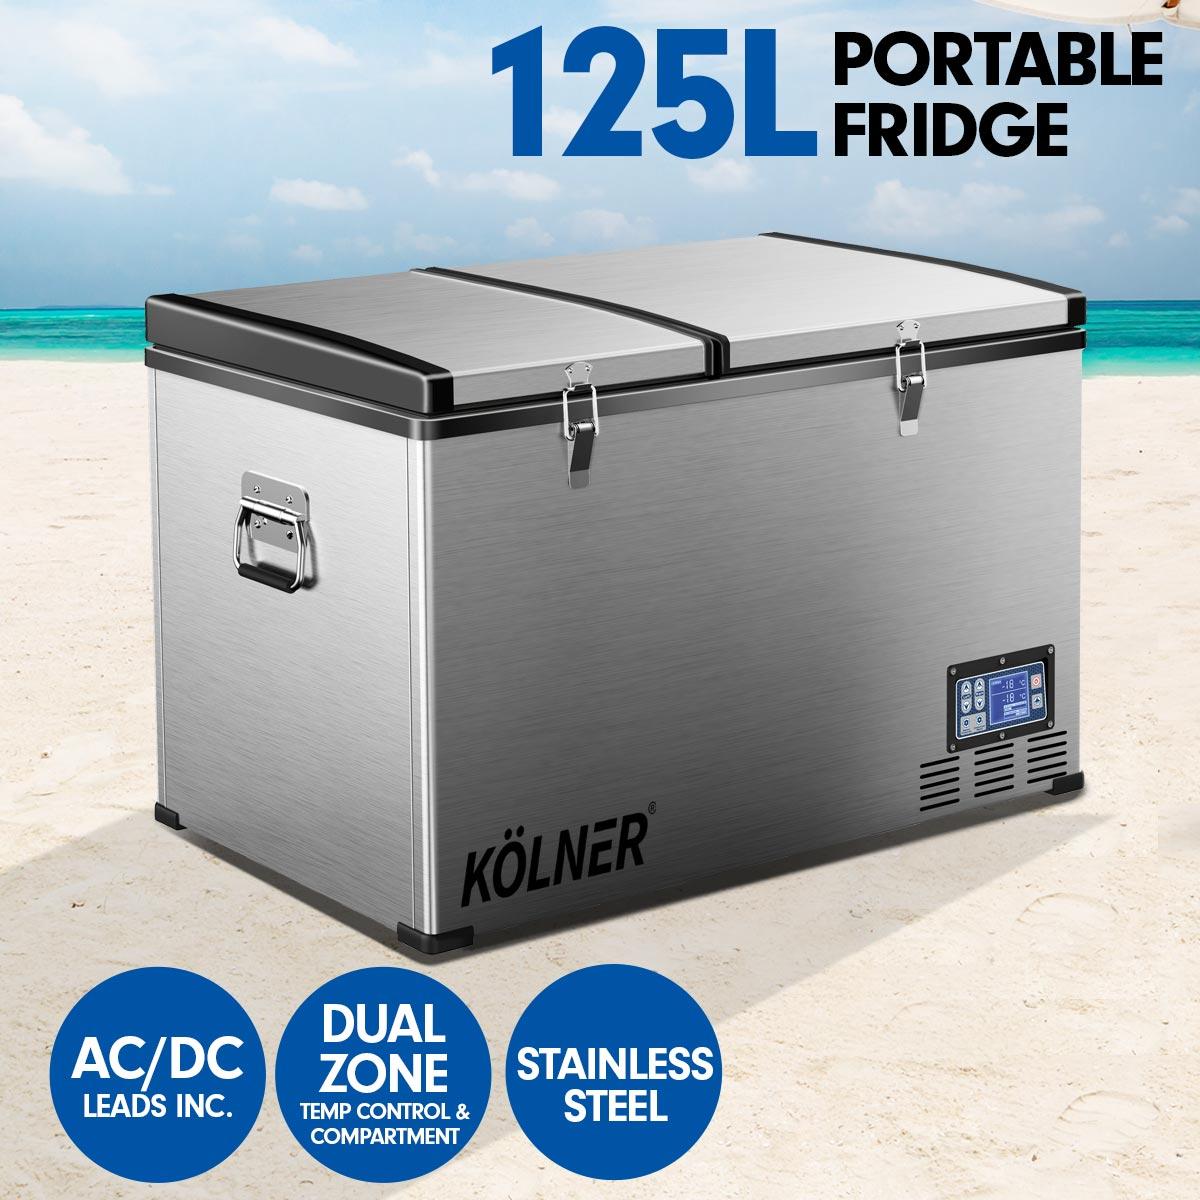 Kolner 125L Portable Fridge Cooler Freezer Camping